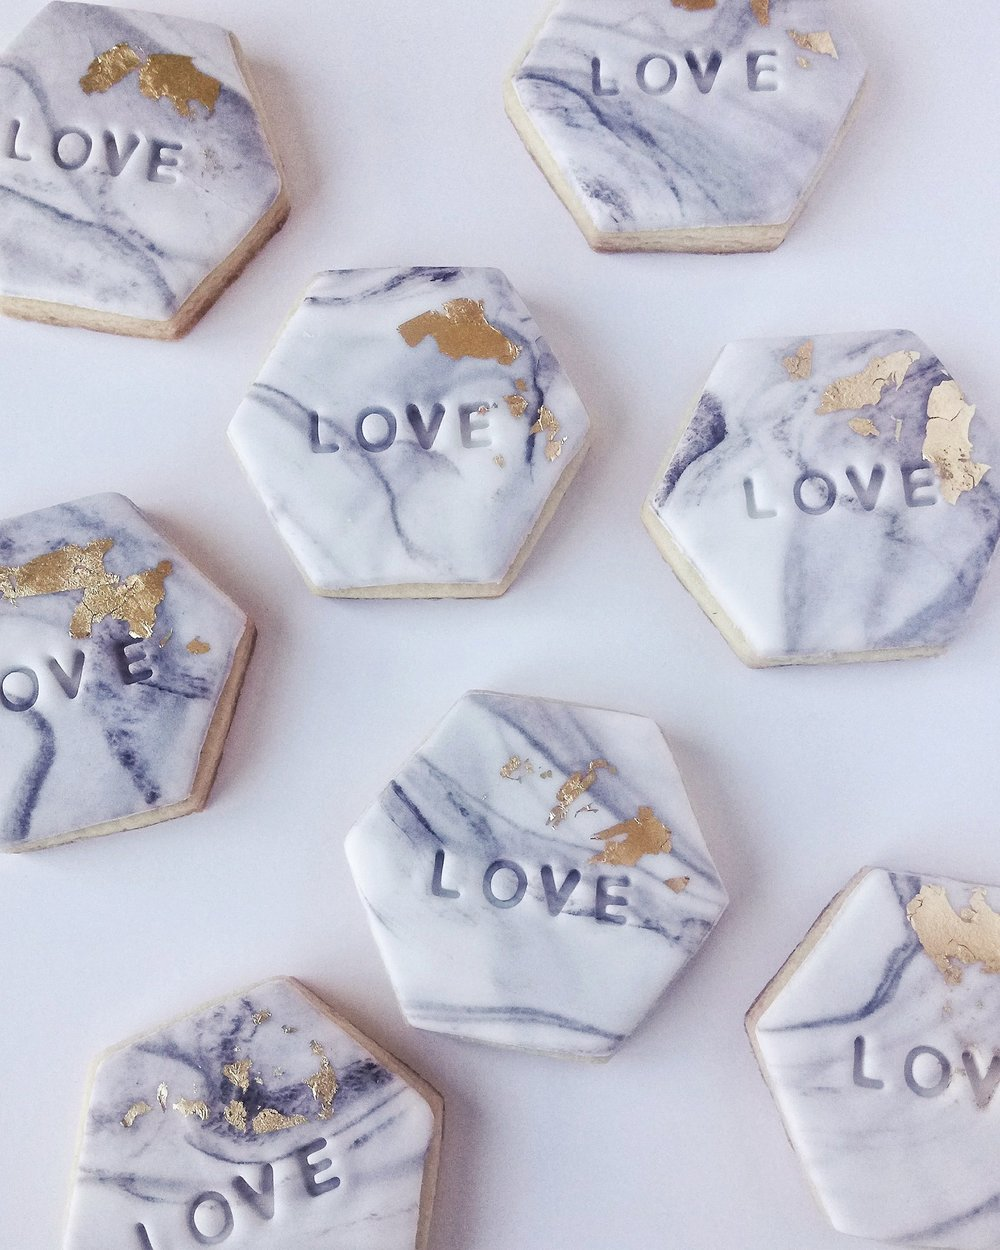 Rebecca Jane Sugar Art - Marble love stamped wedding cookie favours with gold leaf